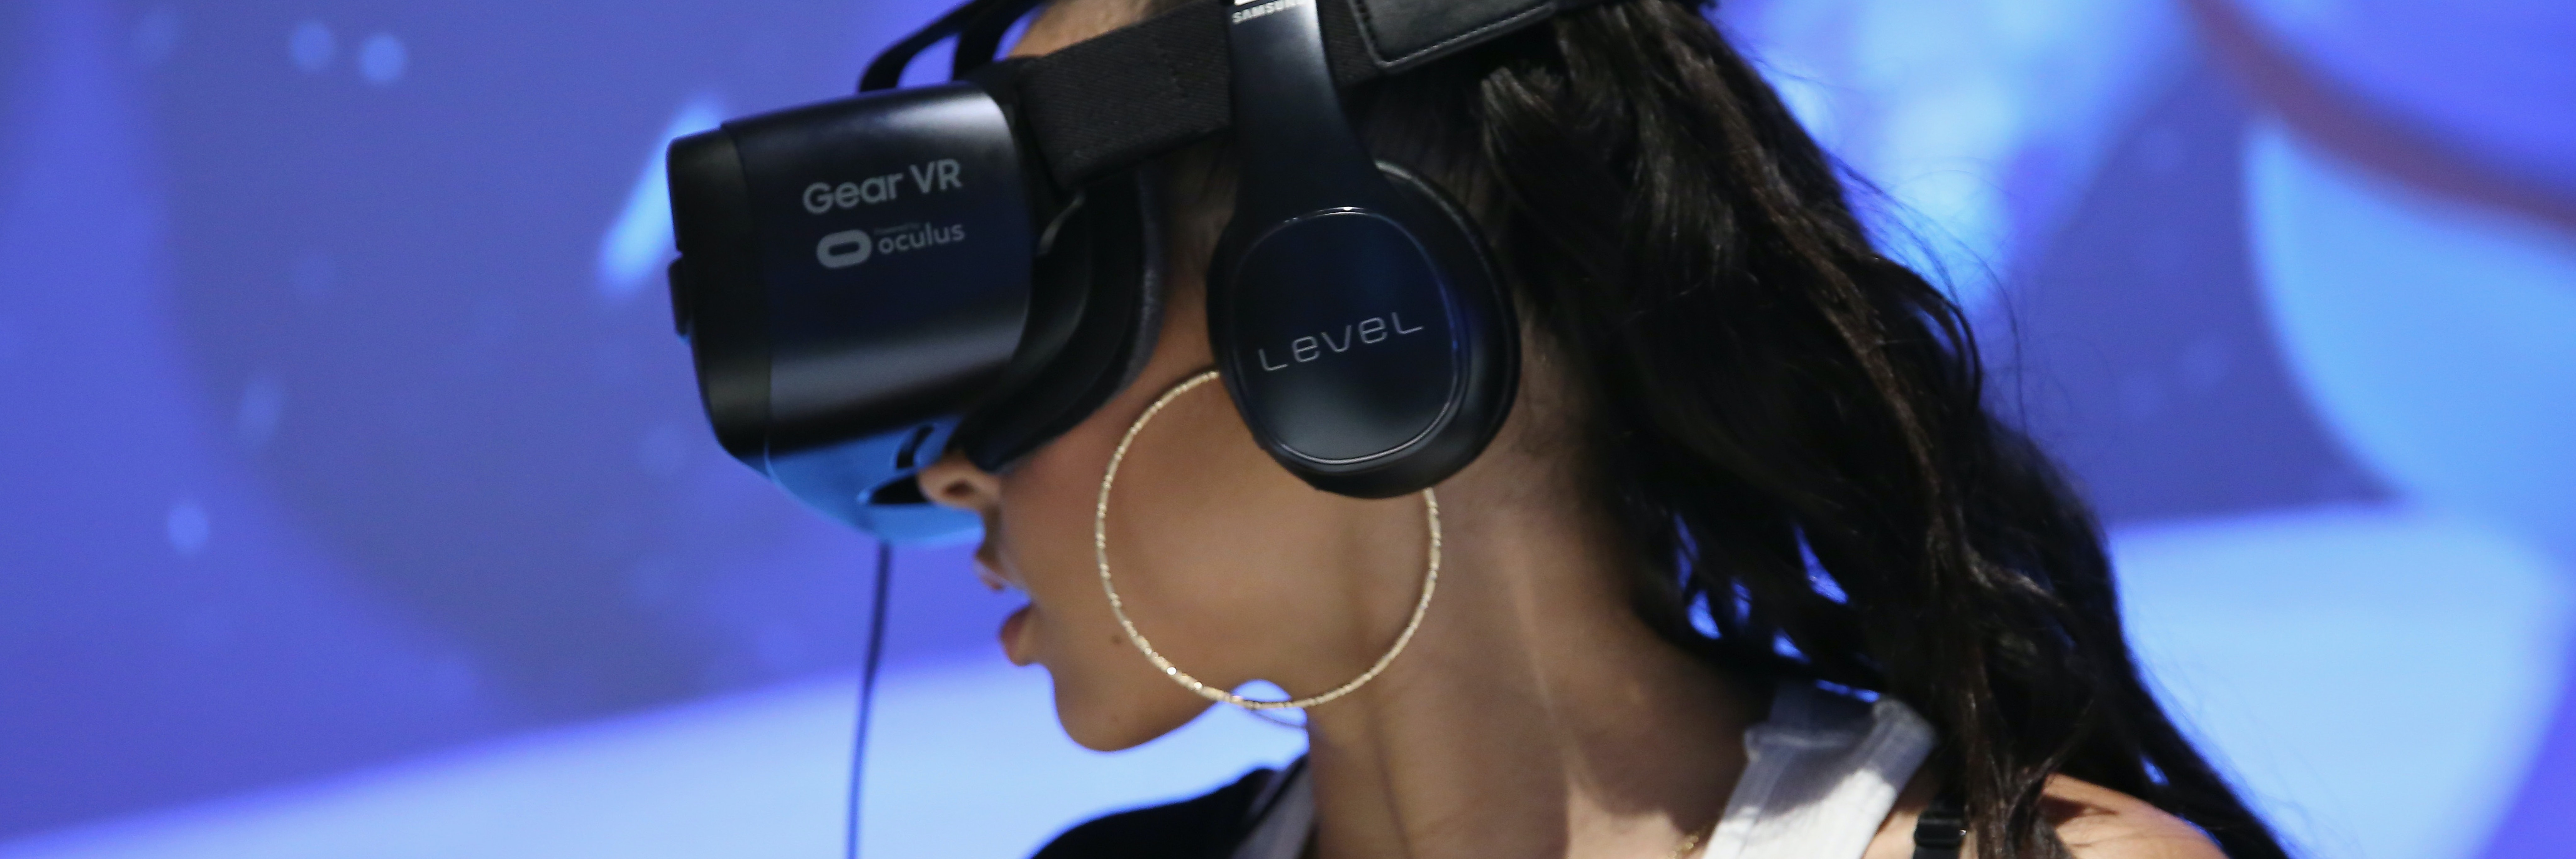 Singer Tinashe experiences Samsung VR at Tinashe LIVE + Z100 Jingle Ball Viewing Party at Samsung 837 on December 9 in New York City.